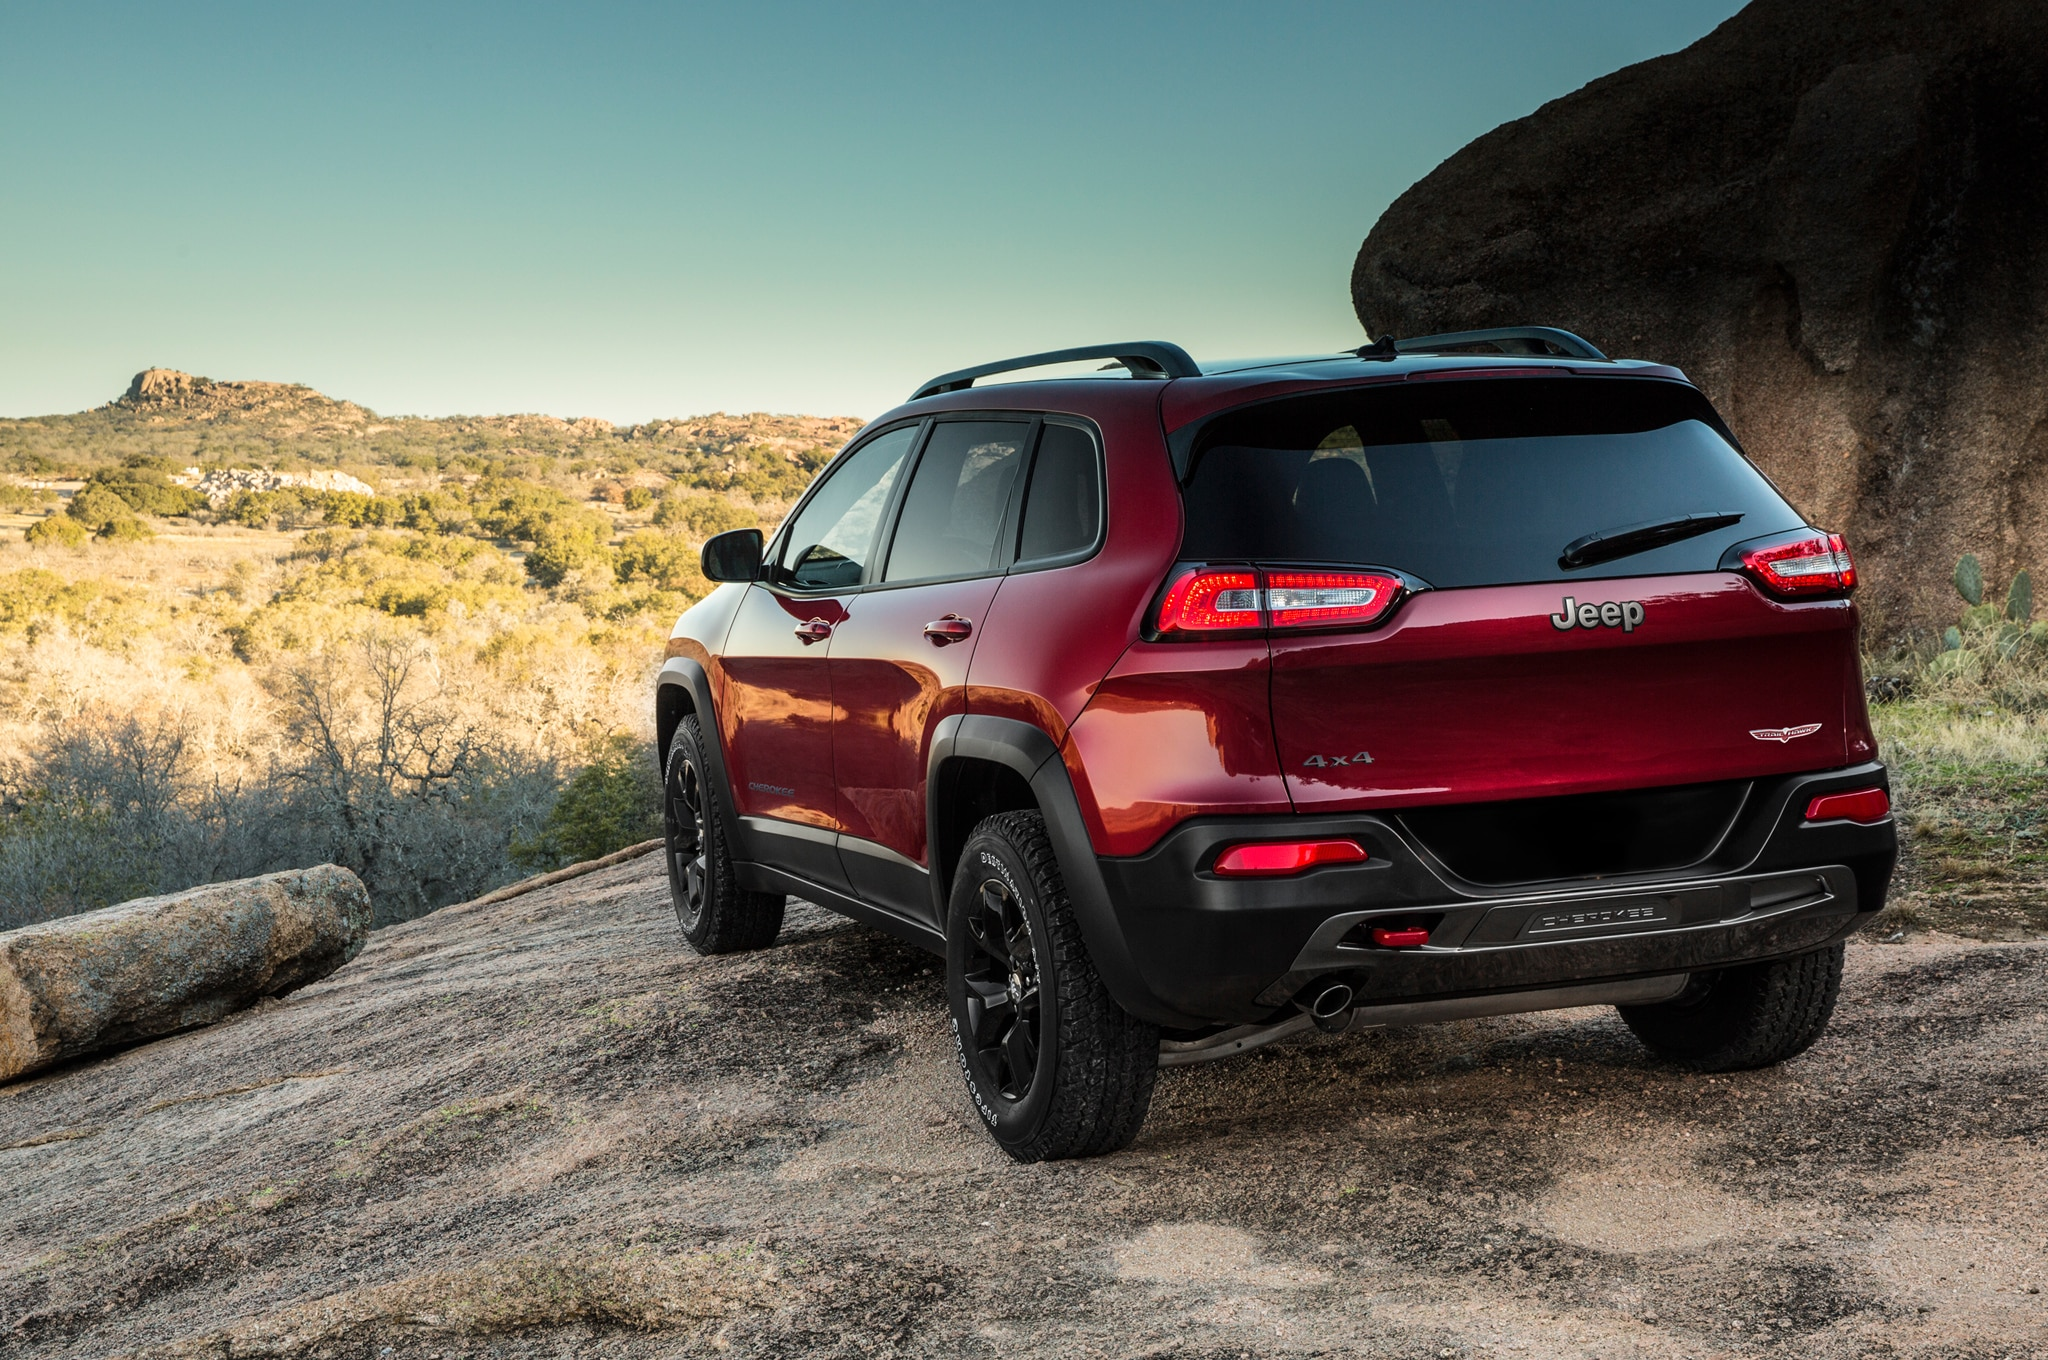 2014 Jeep Cherokee left rear 11